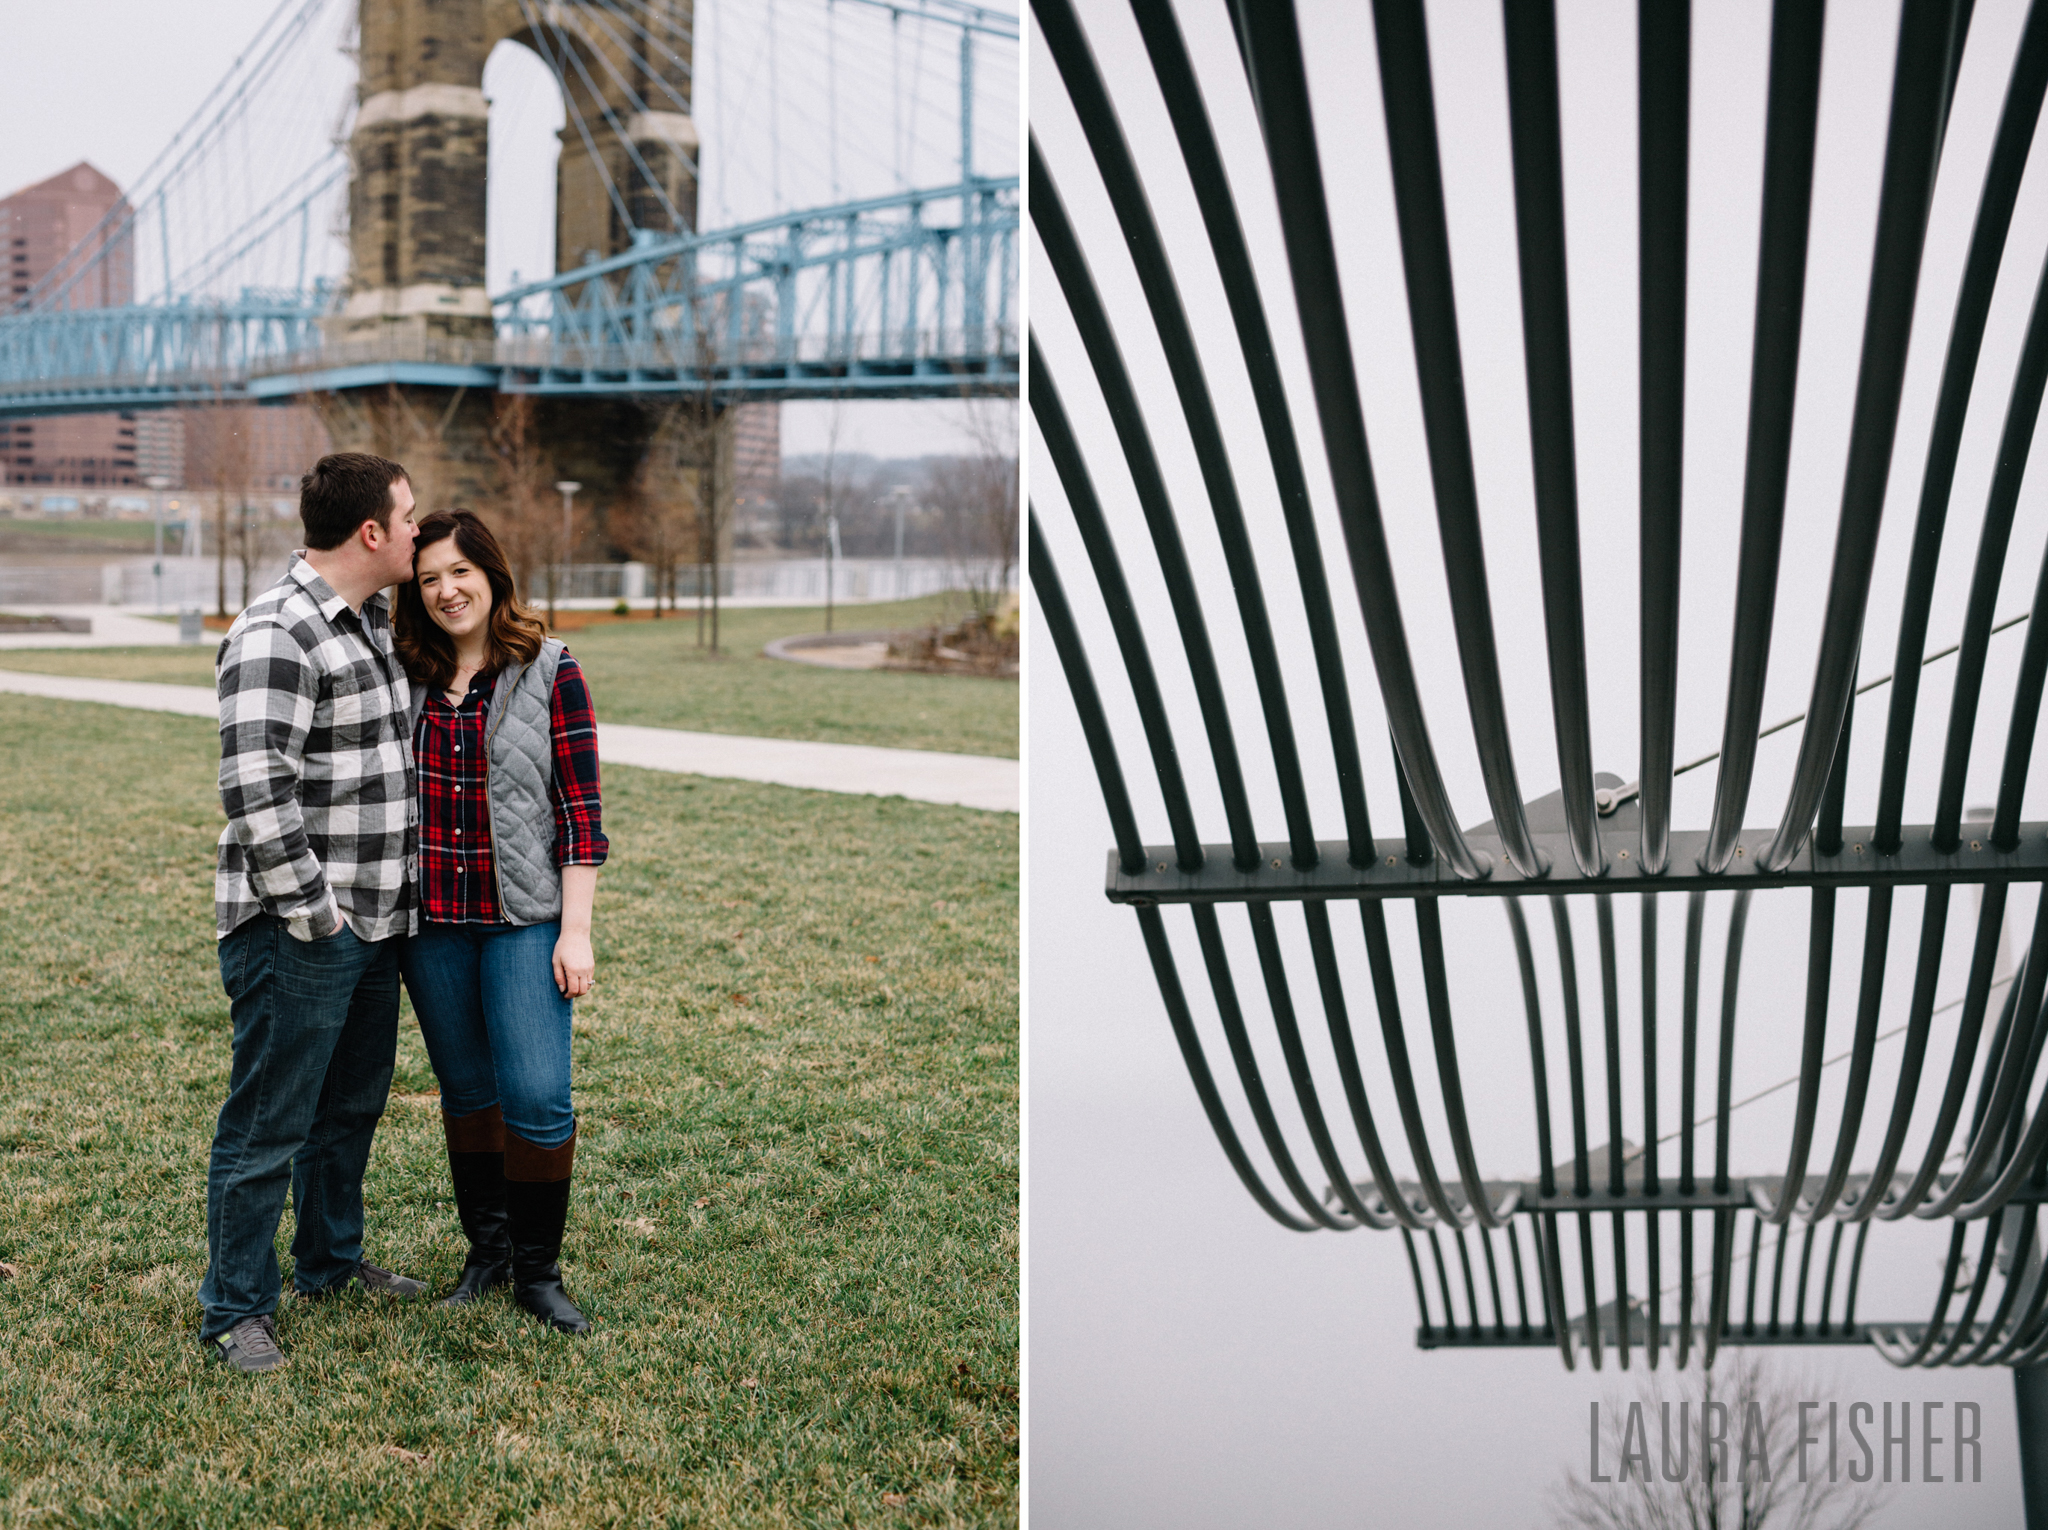 cincinnati-smale-park-OTR-engagement-photography-laura-fisher-0004.jpg